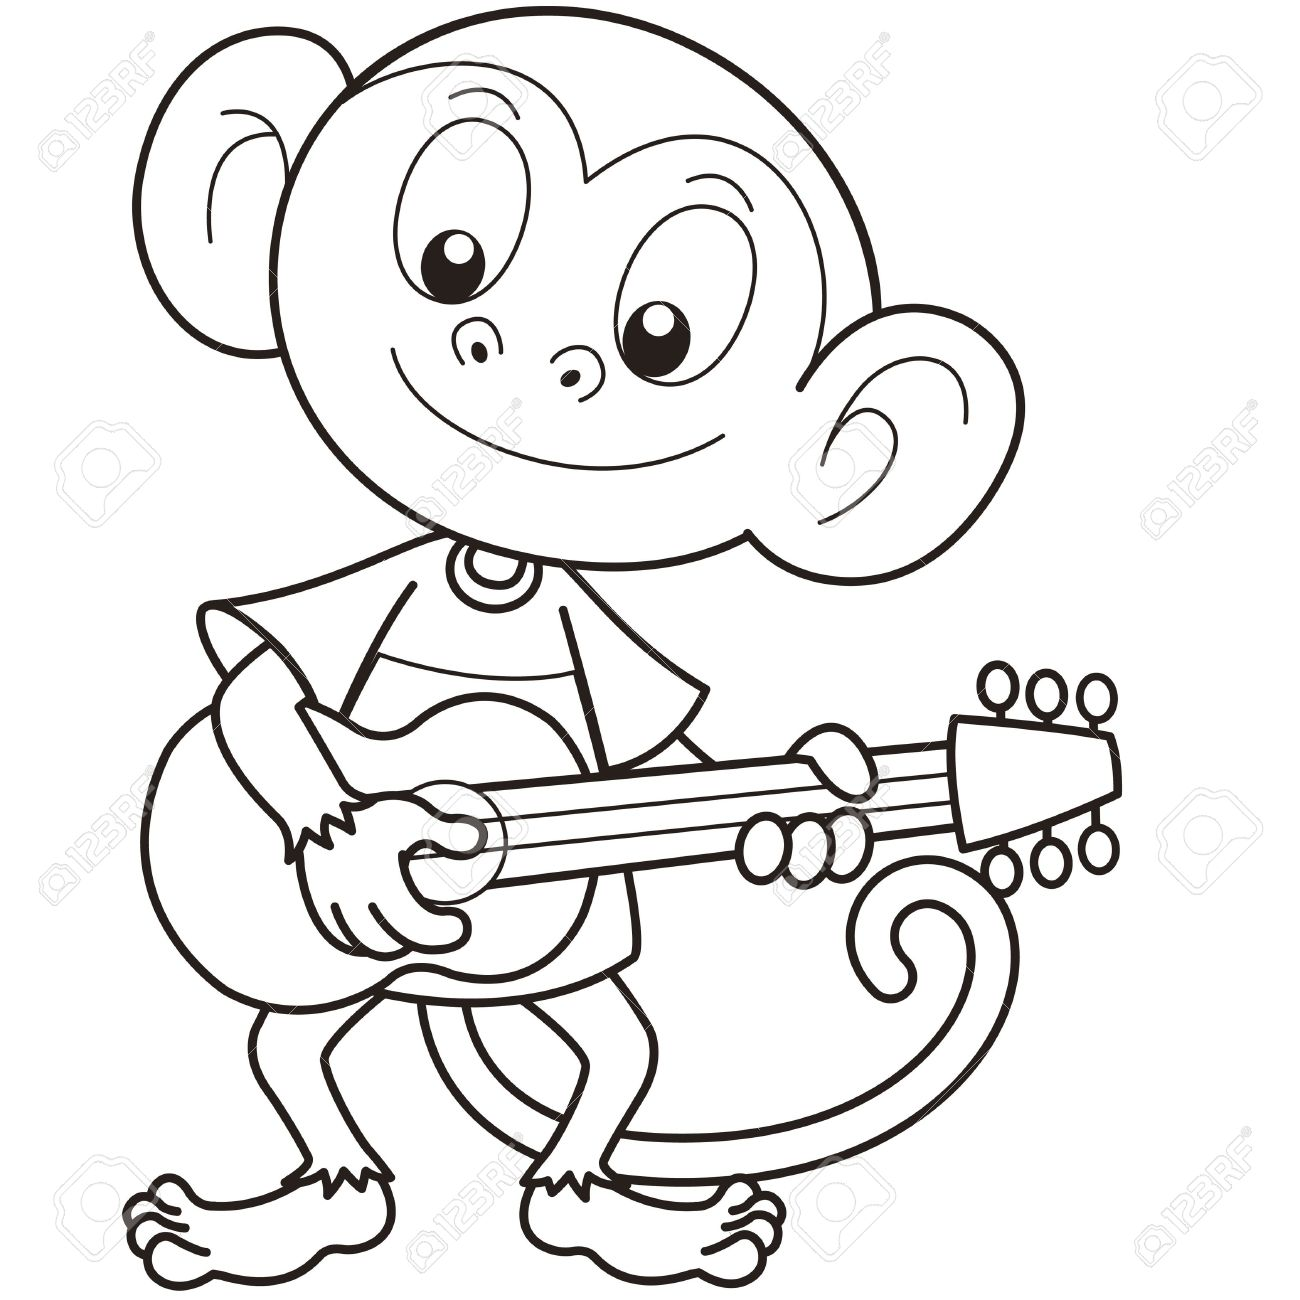 monkey playing cymbals